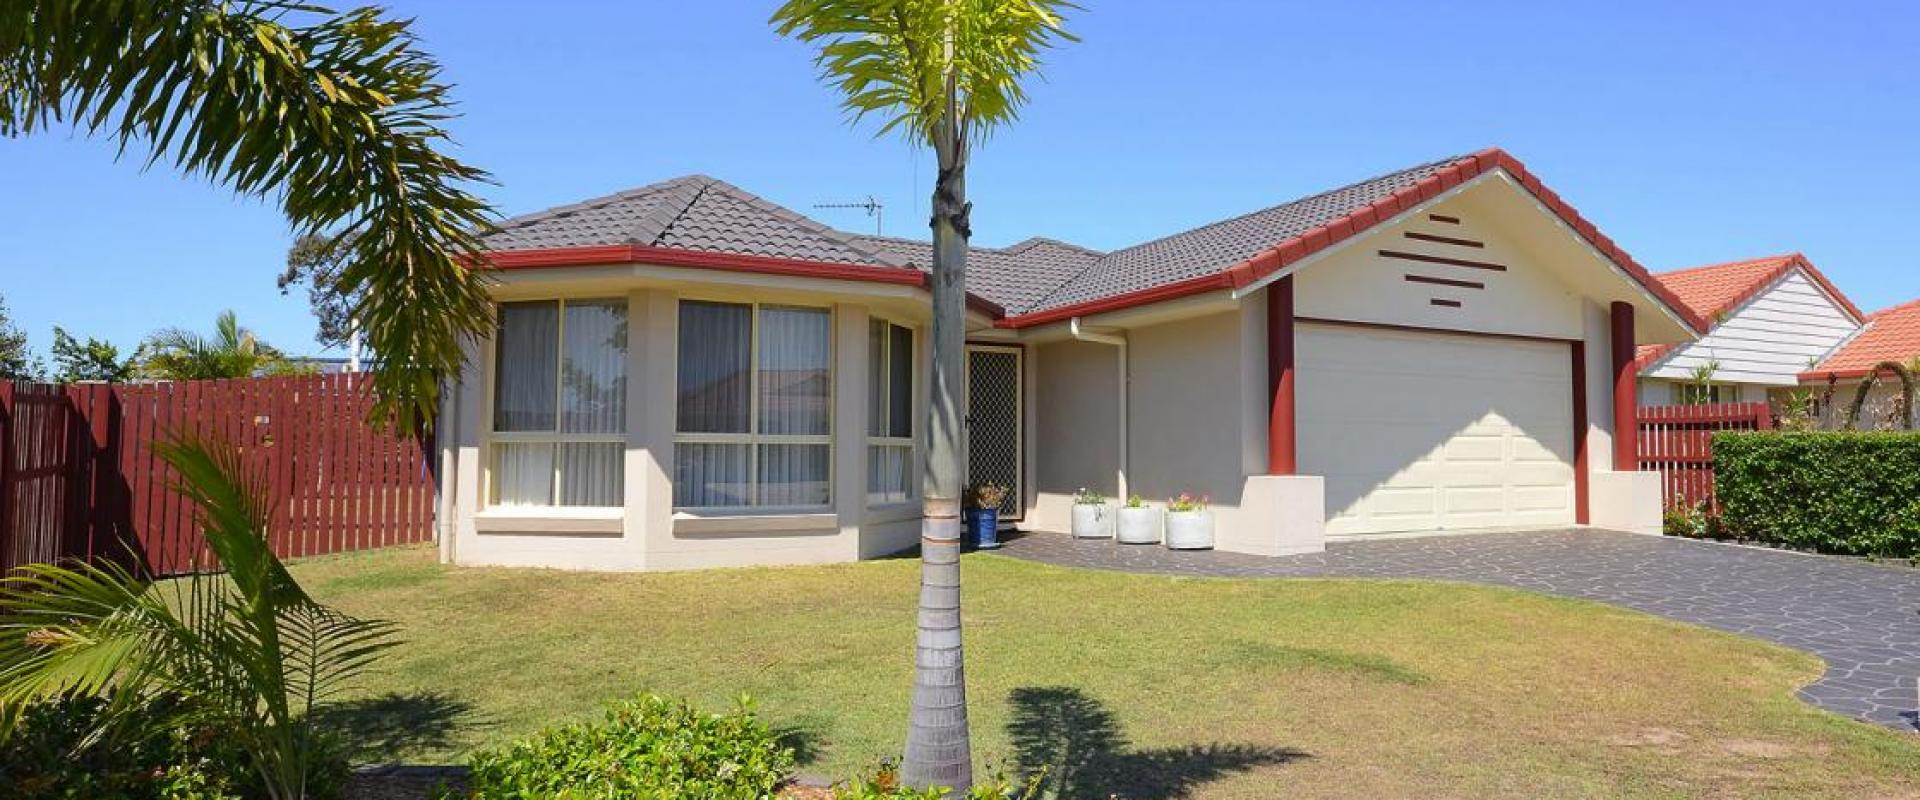 EXTENDED KITCHEN, WIDE SIDE ACCESS, BAY WINDOW SEPARATE LIVING ROOM, OPEN PLAN FAMILY AND MEALS AREA, EN SUITE SHOWER, WALK IN ROBE, AIR CONDITIONING.